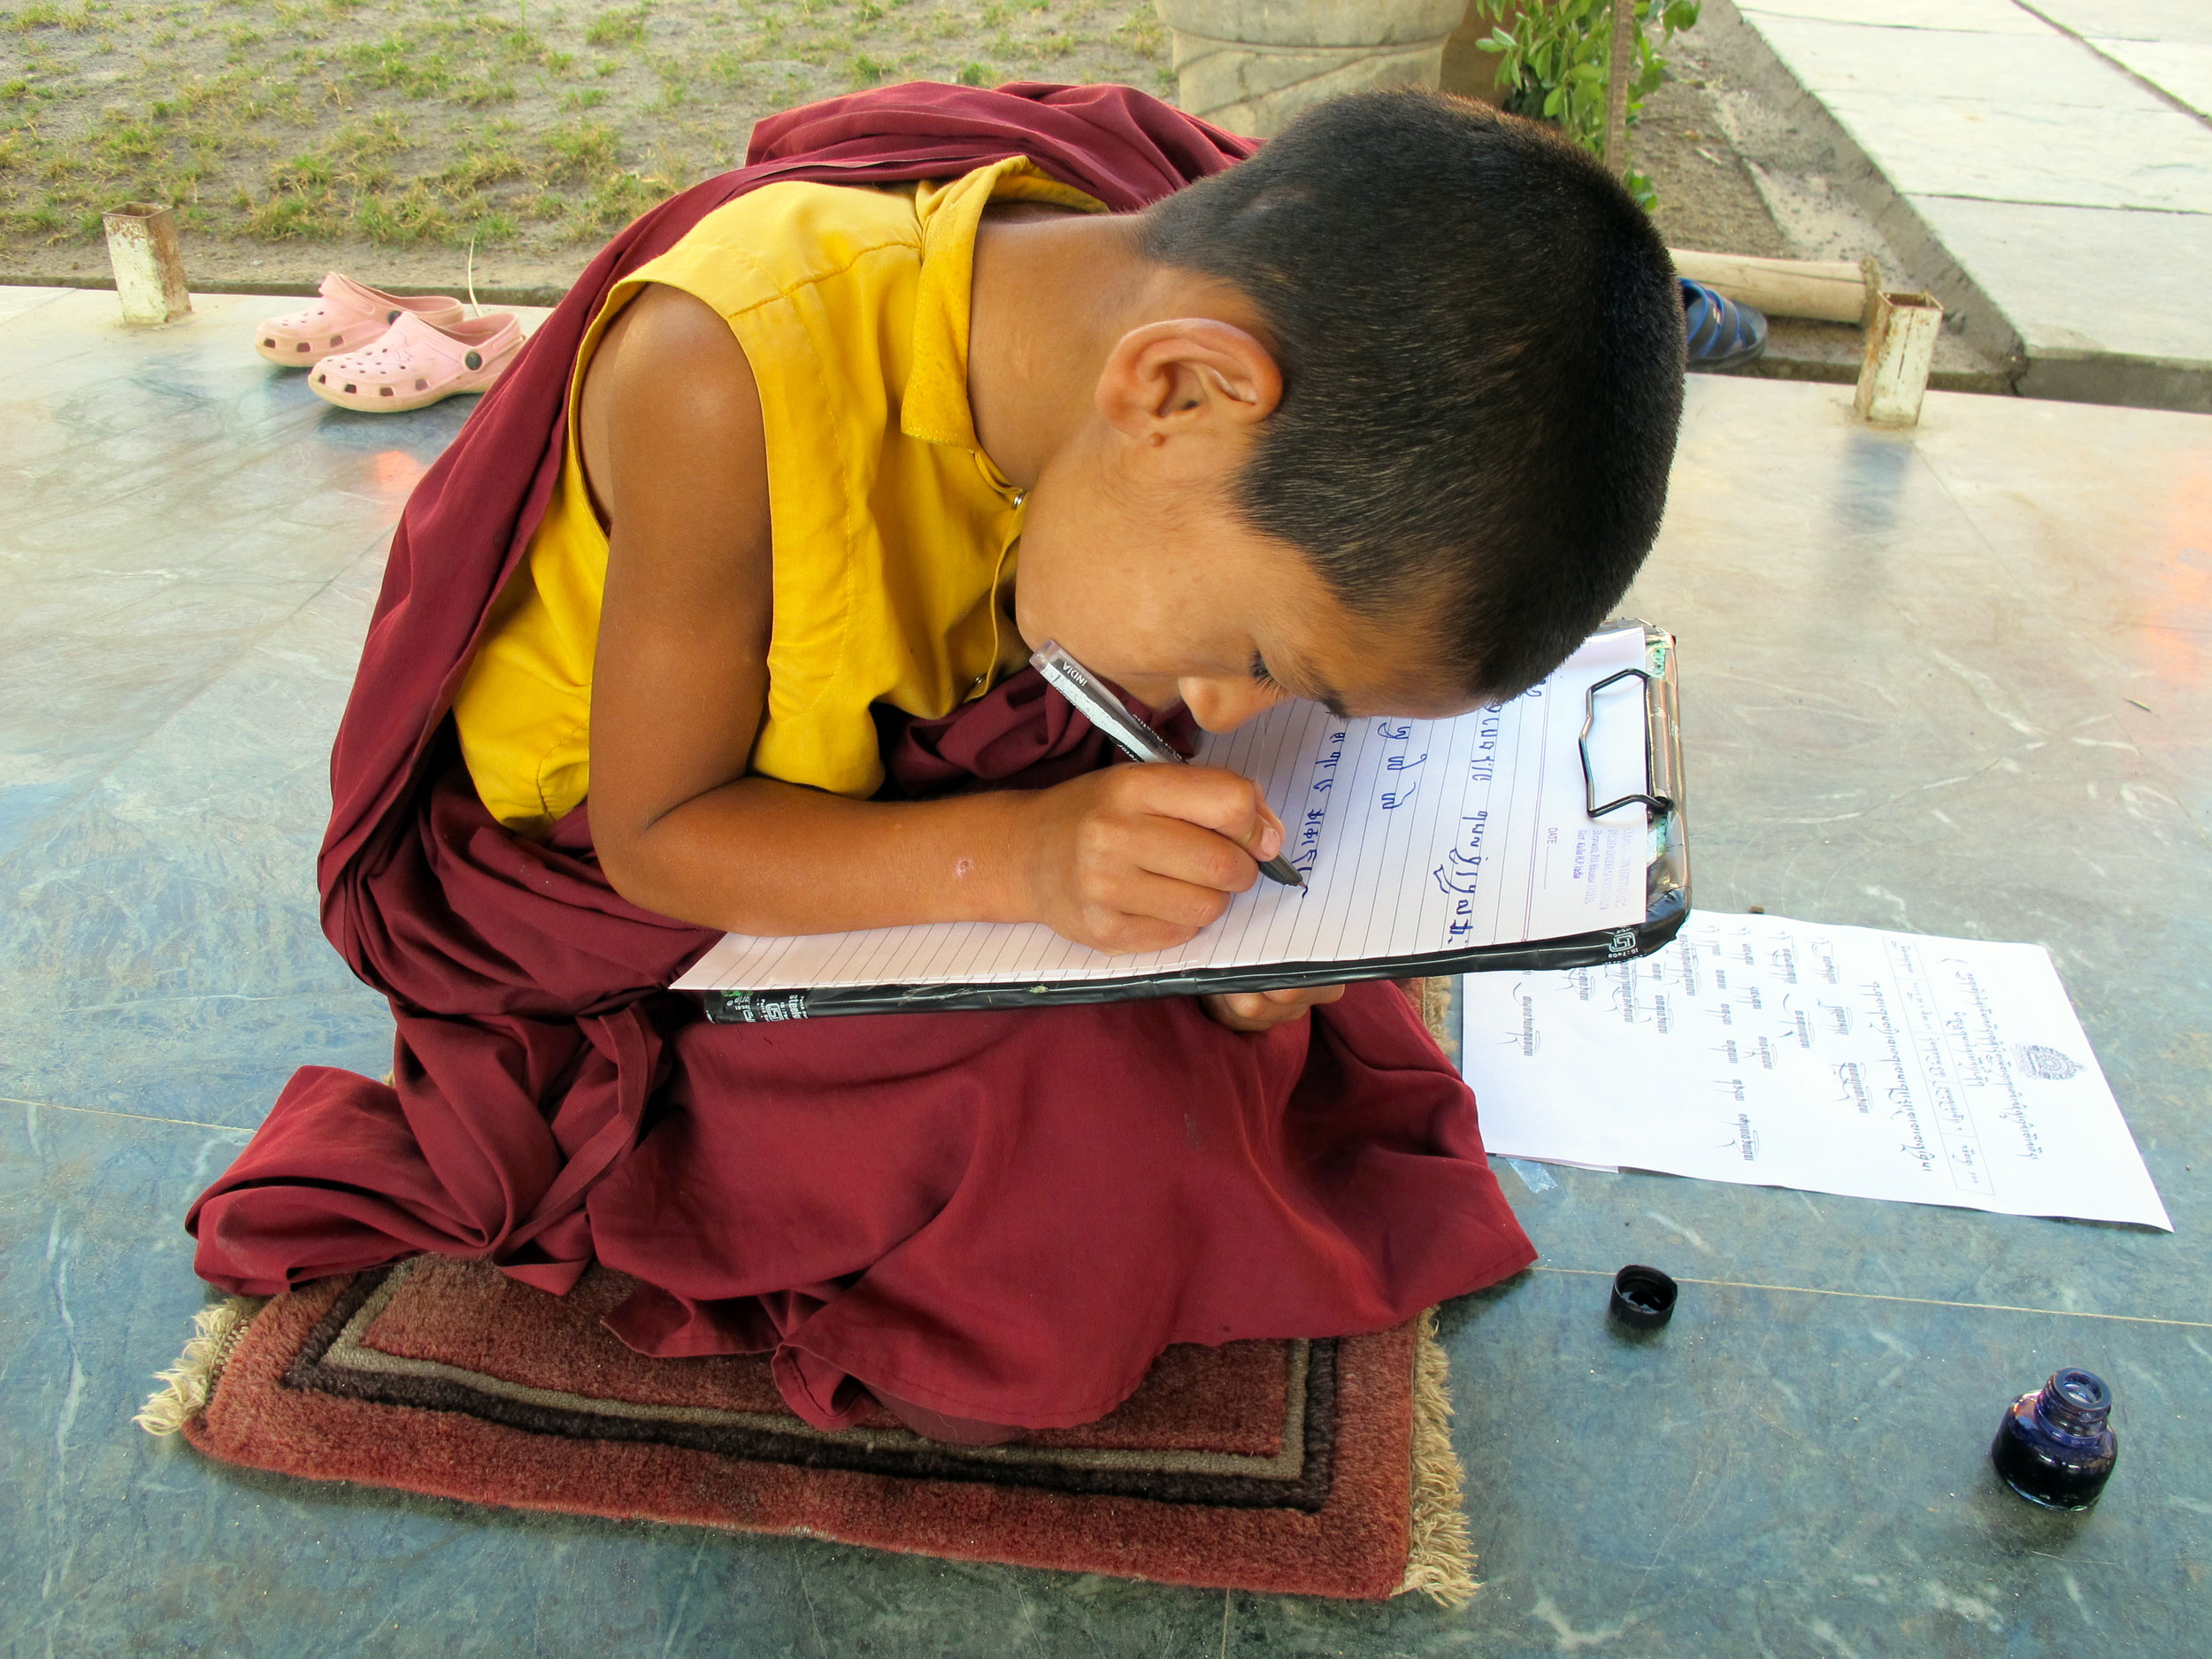 A young monk taking the yearly evaluation examination of Dechen Choekhor Mahavihara.